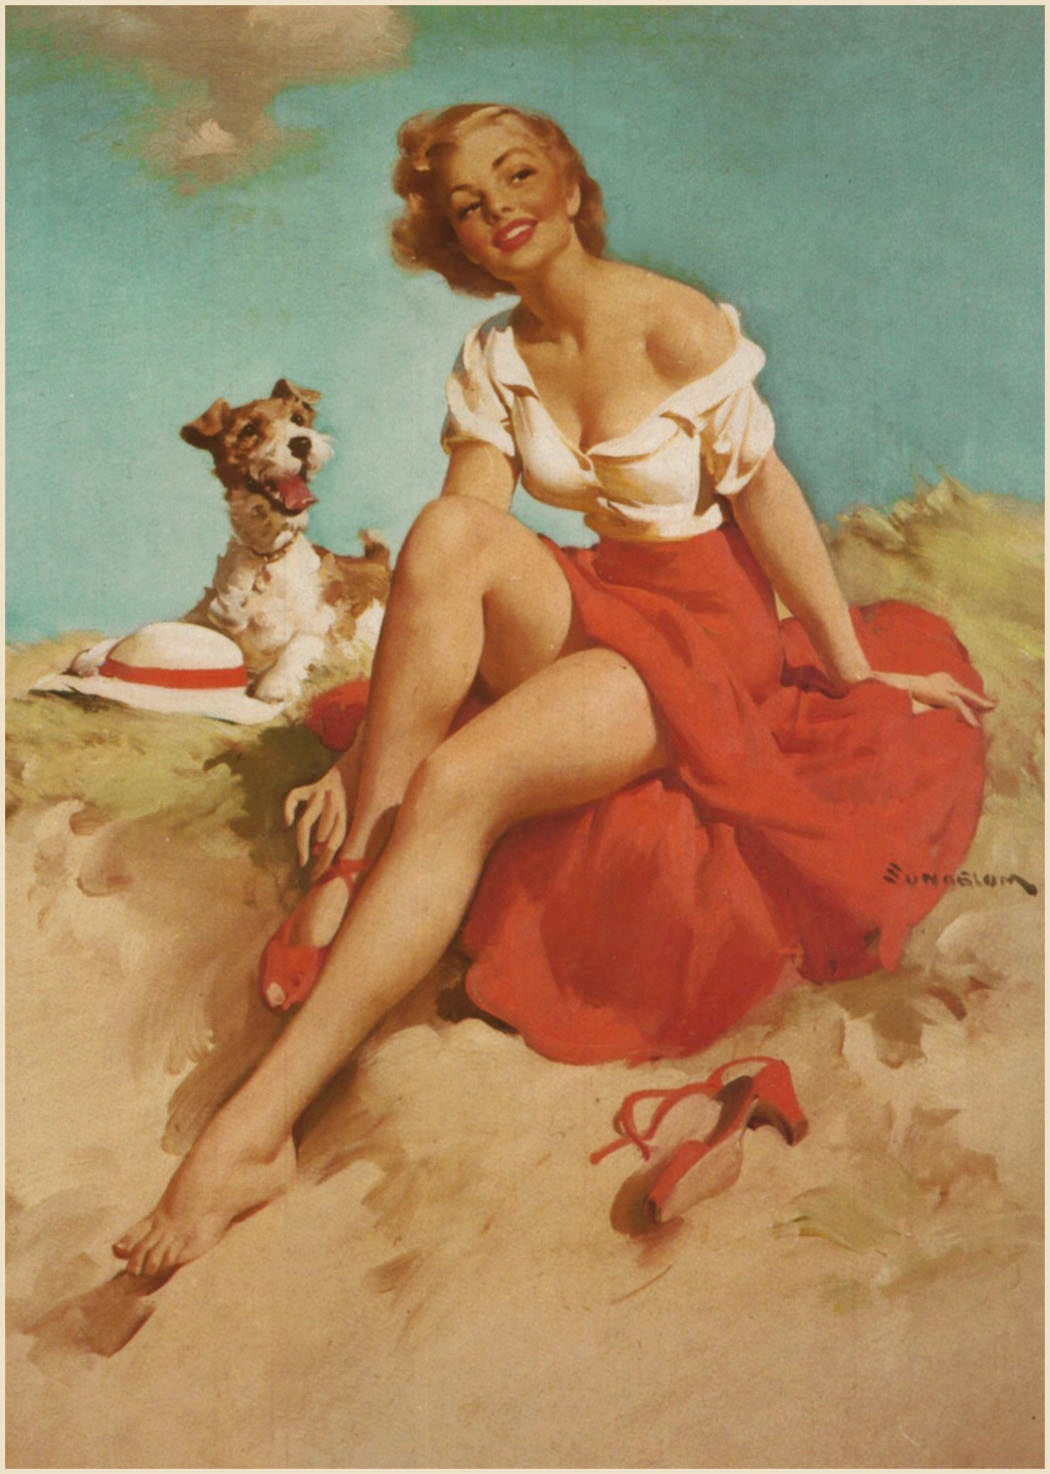 Wartime Pin Up